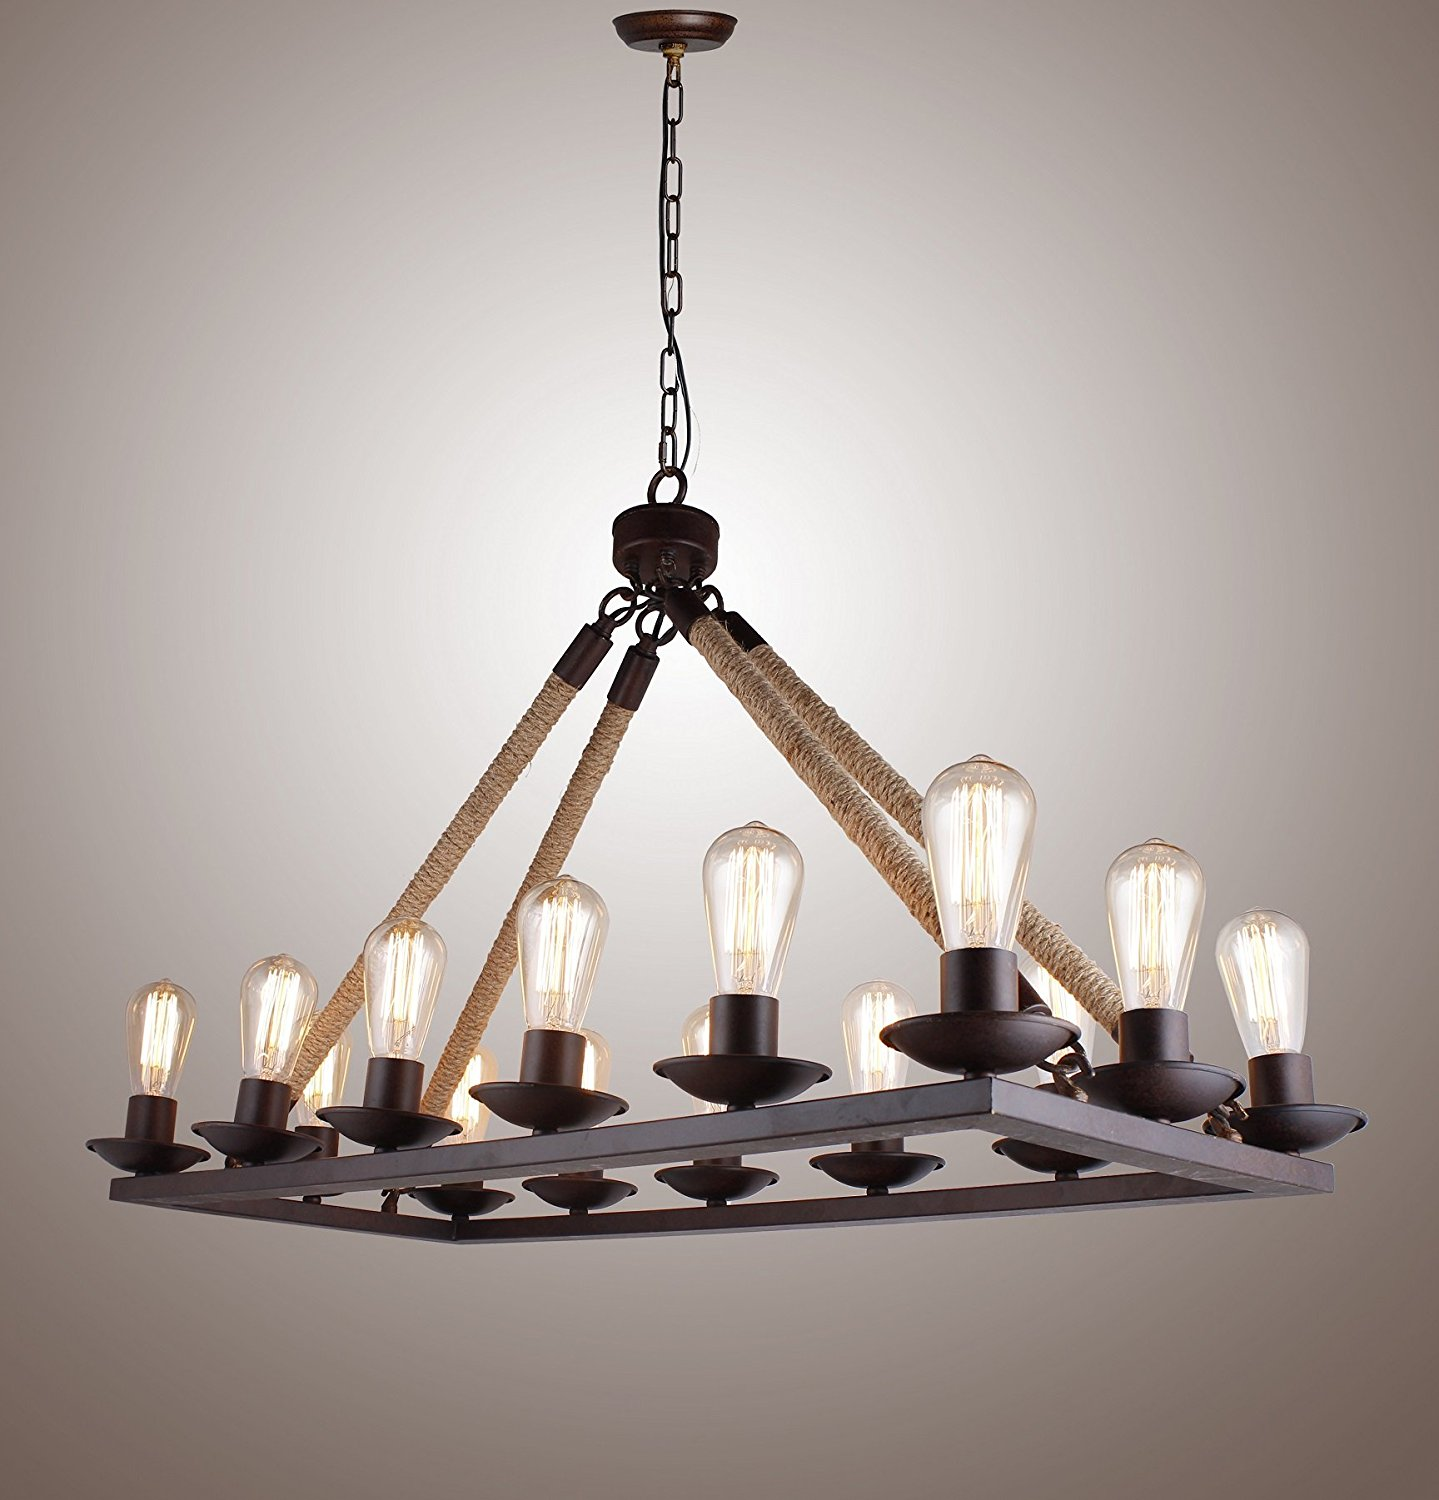 Rustic chandeliers edison chandeliers guide to the best of 2018 arubaitofo Images